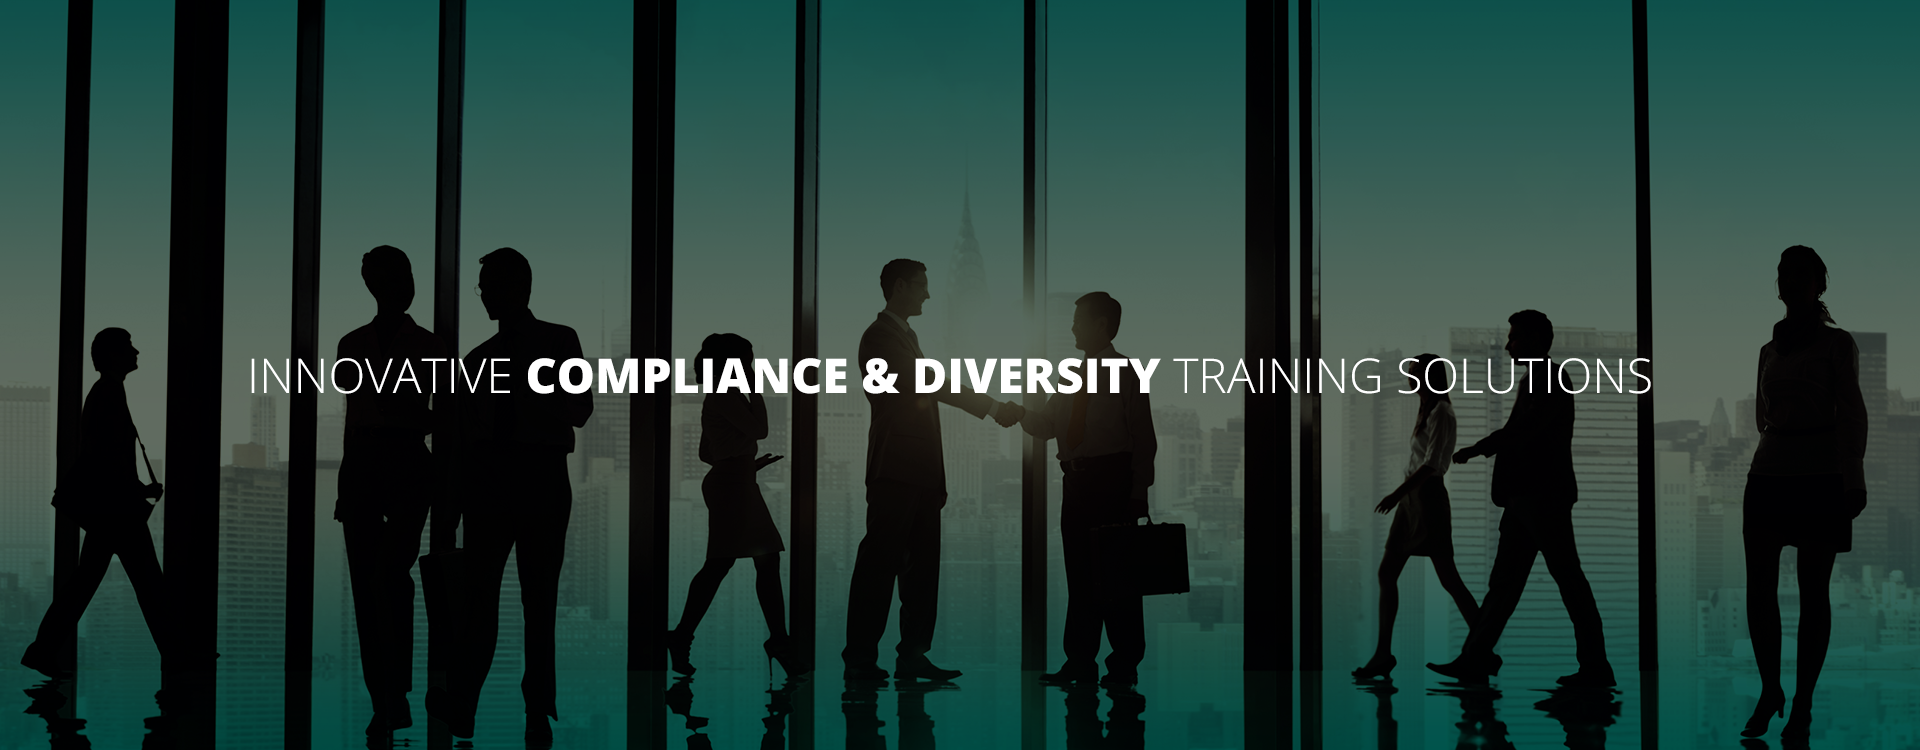 Anderson-davis: Innovative Compliance & Diversity Training Solutions